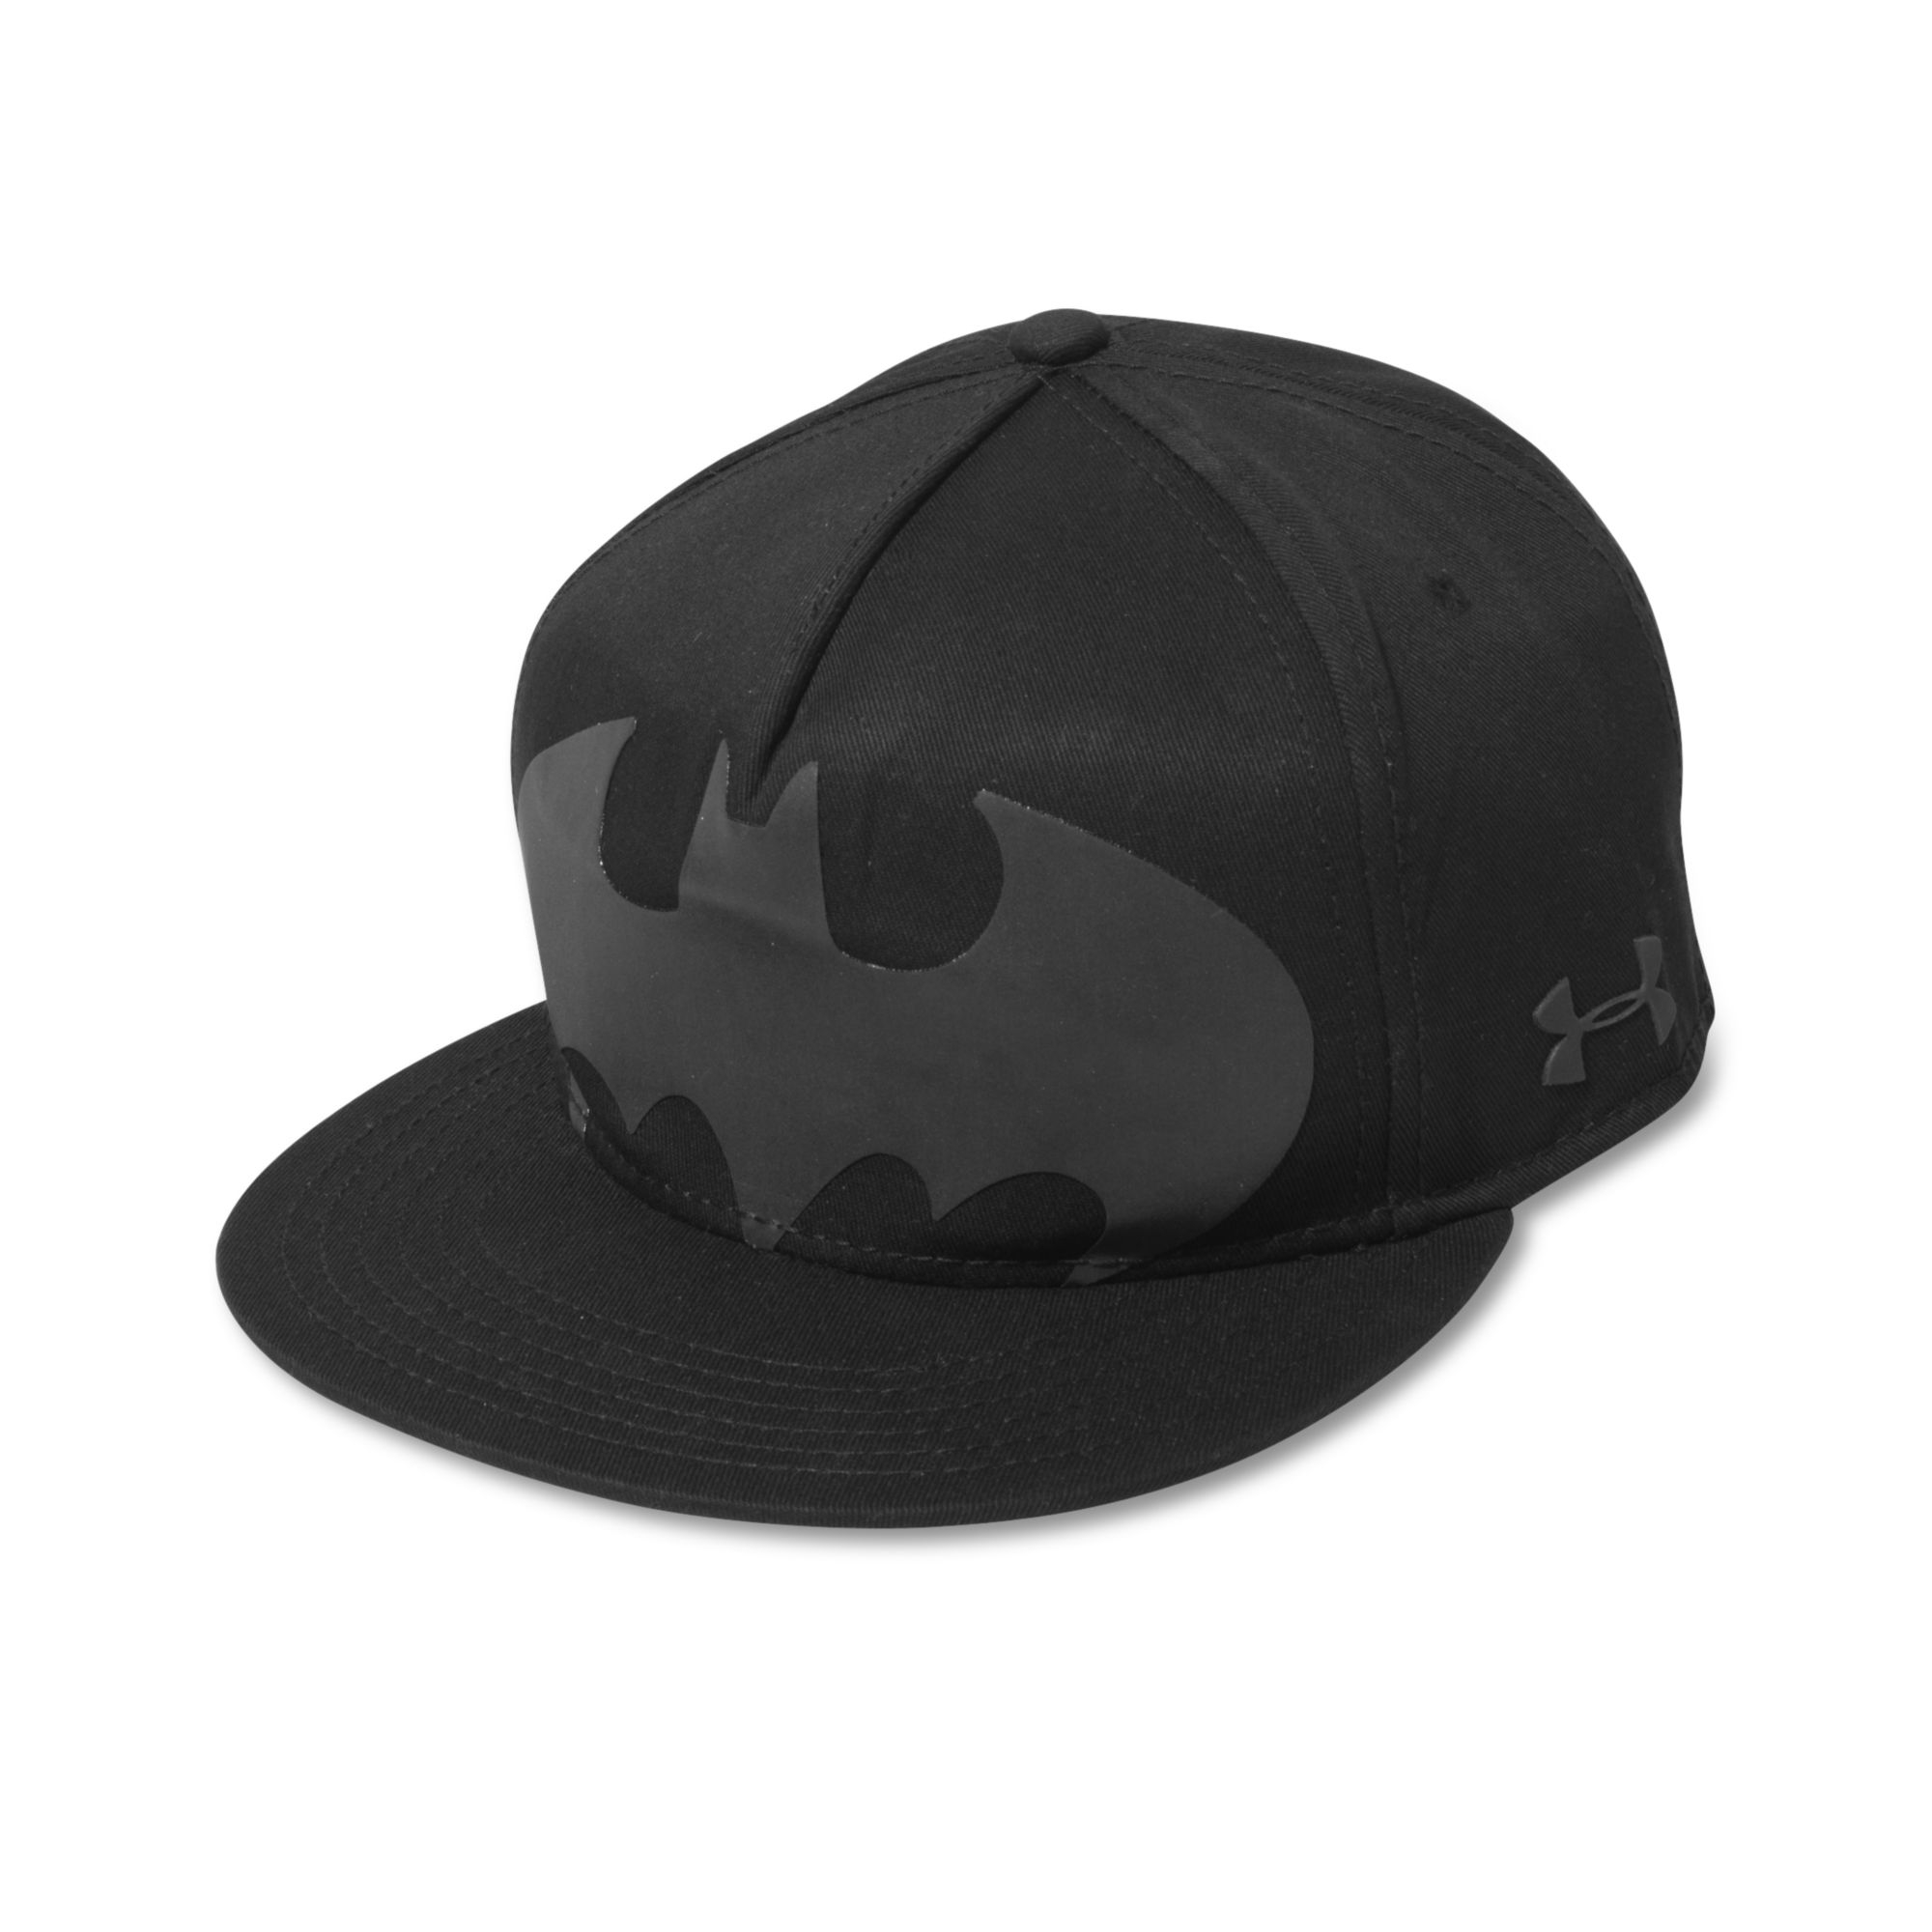 1a1a0c5397a ... official store lyst under armour batman reflective hat in black for men  1482a 3672a